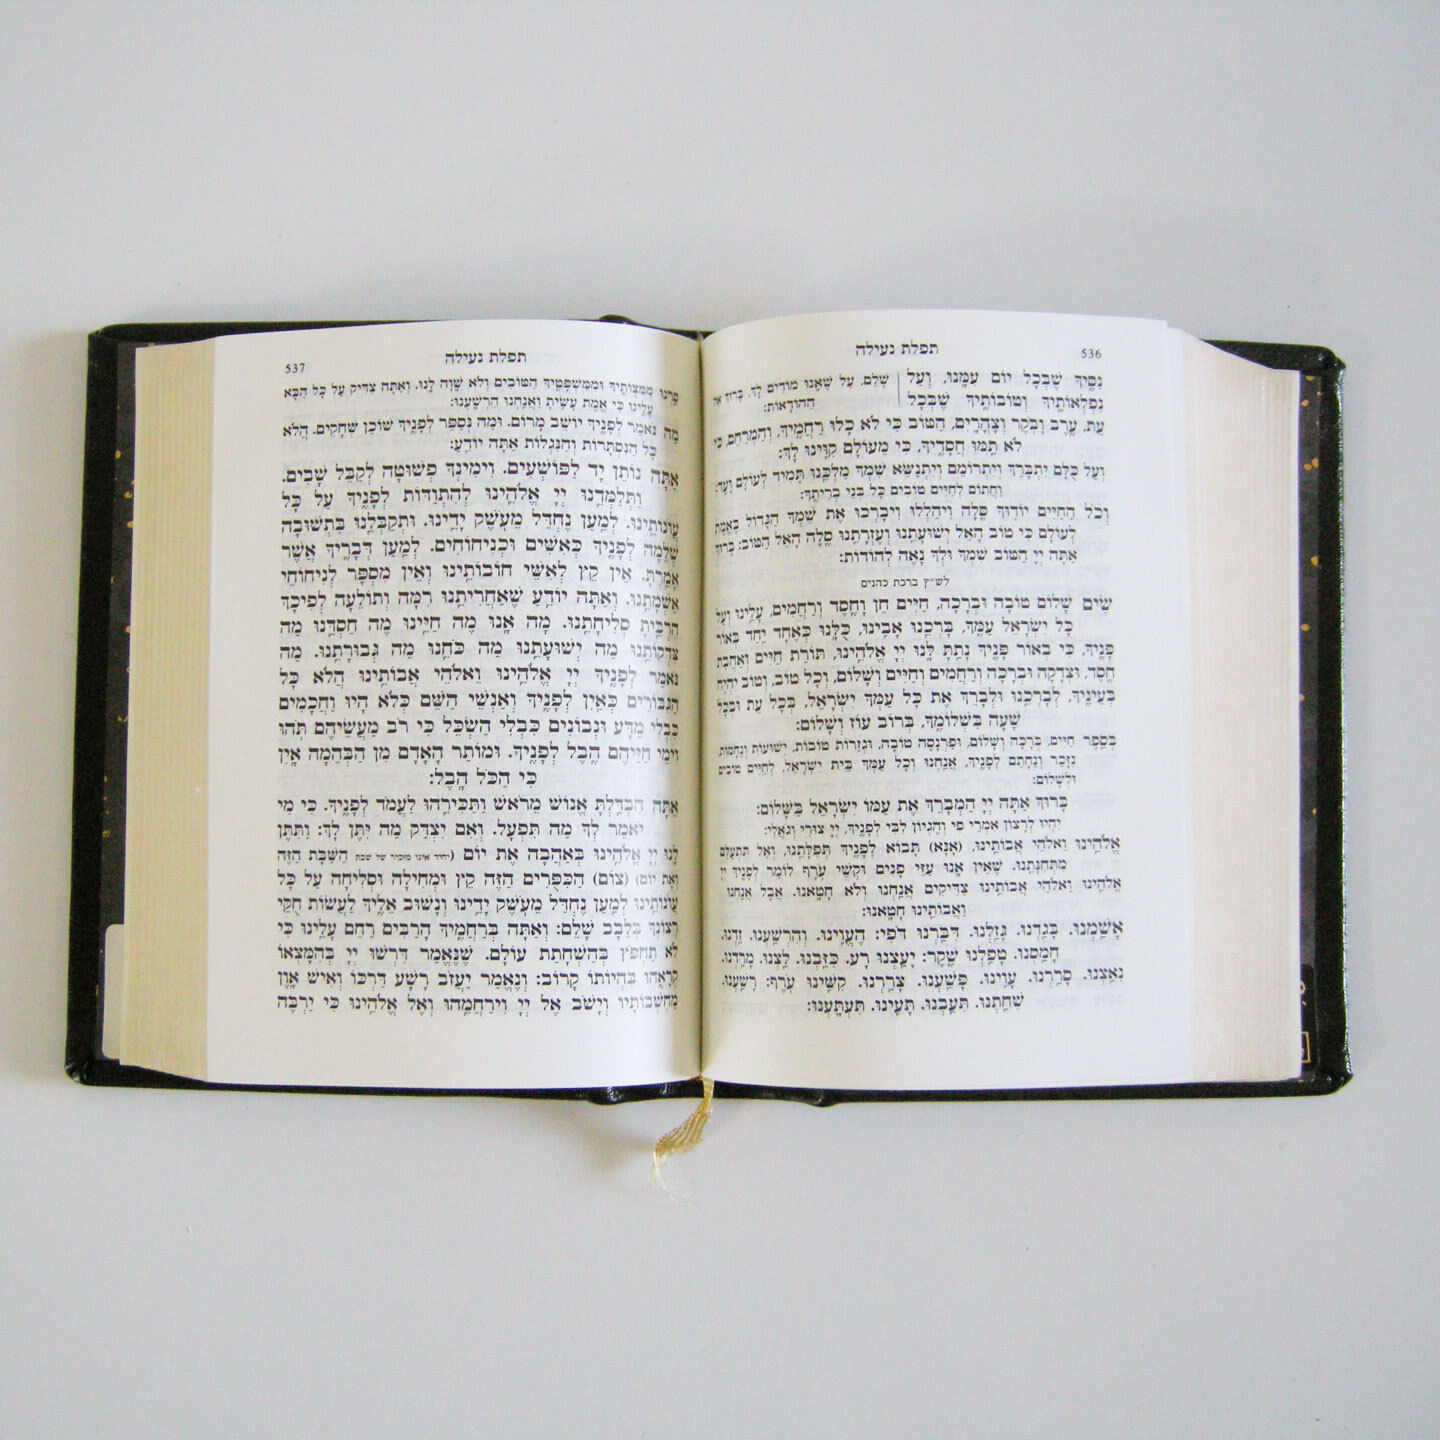 Genuine Leather-Bound Pocket Siddur Gilded Pages Hebrew Handmade Miller Israel (מוכר מישראל) 3